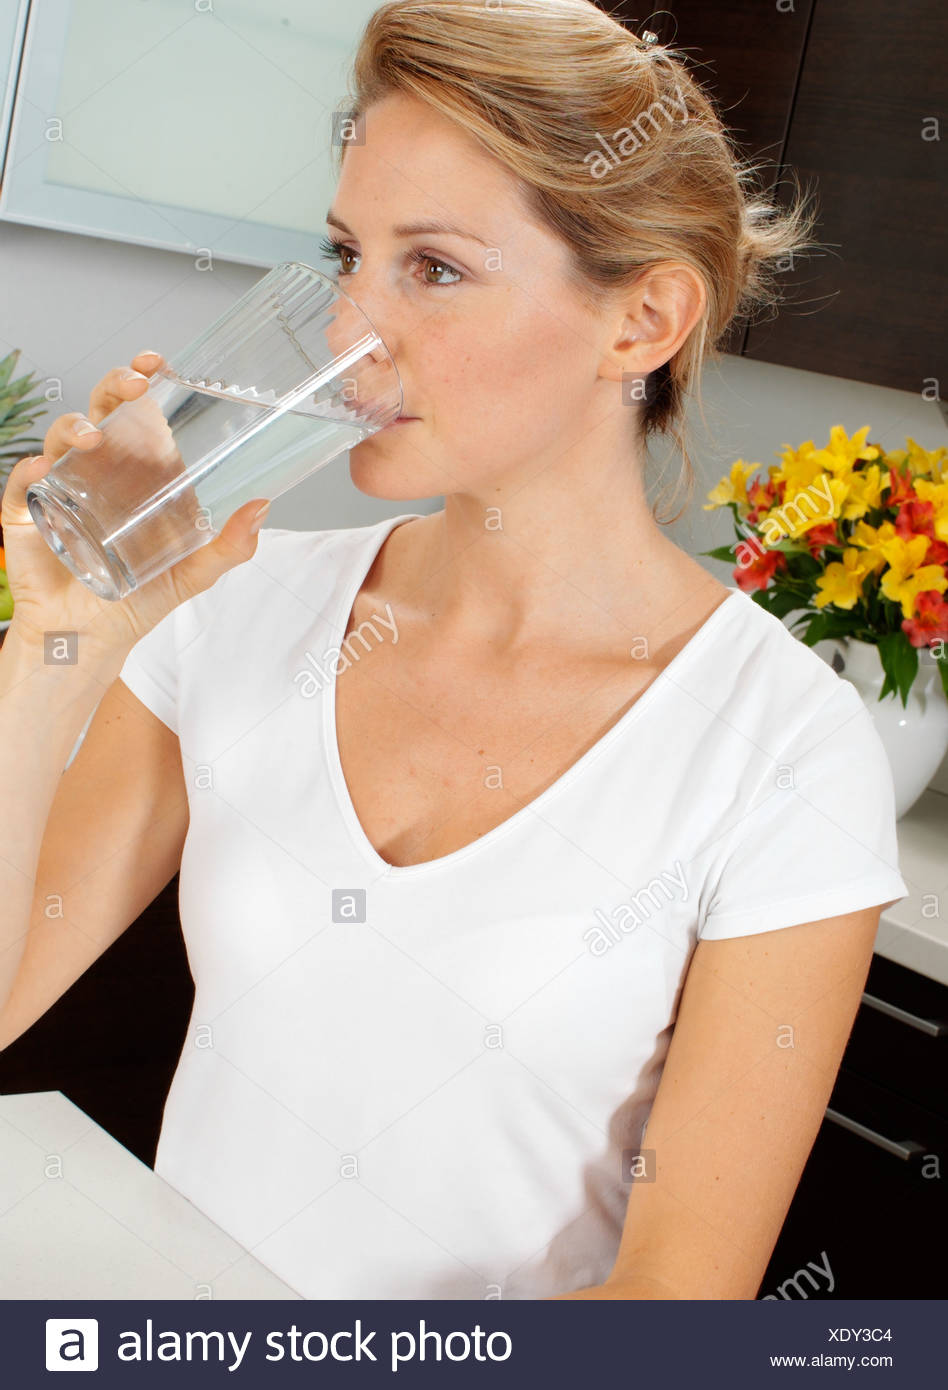 WOMAN DRINKING GLASS OF WATER - Stock Image